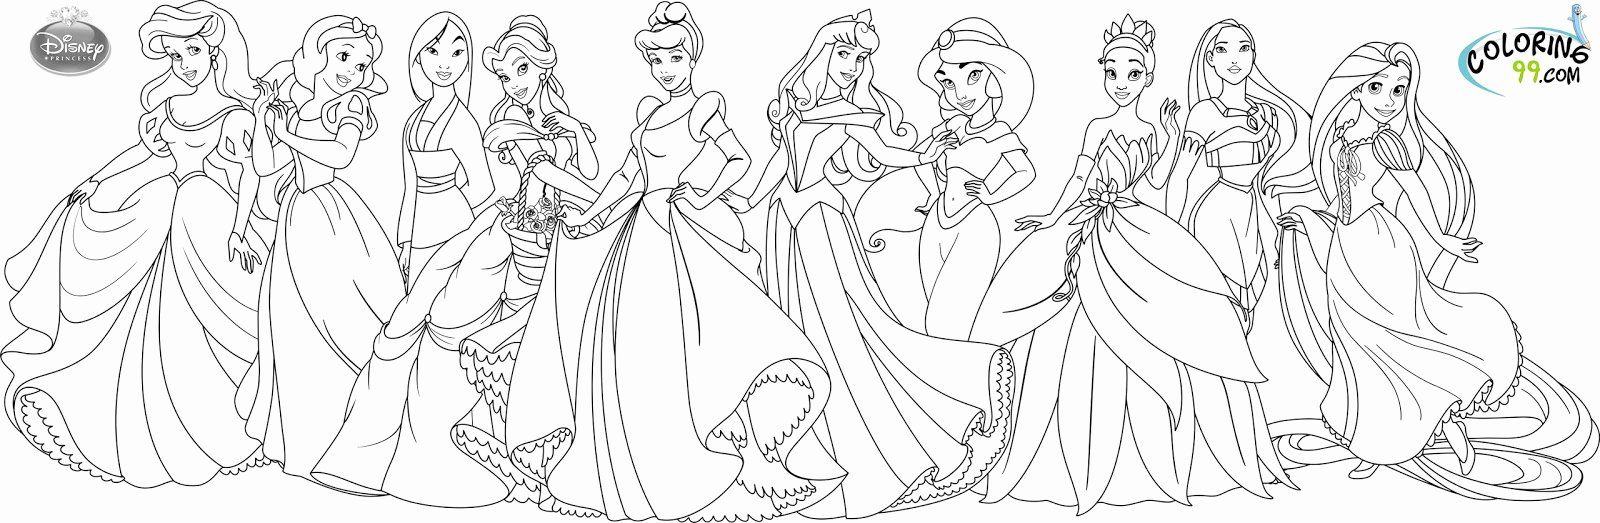 All Disney Princess Coloring Pages Beautiful Disney Princess Coloring Pages In 2020 Princess Coloring Pages Disney Princess Coloring Pages Disney Princess Colors